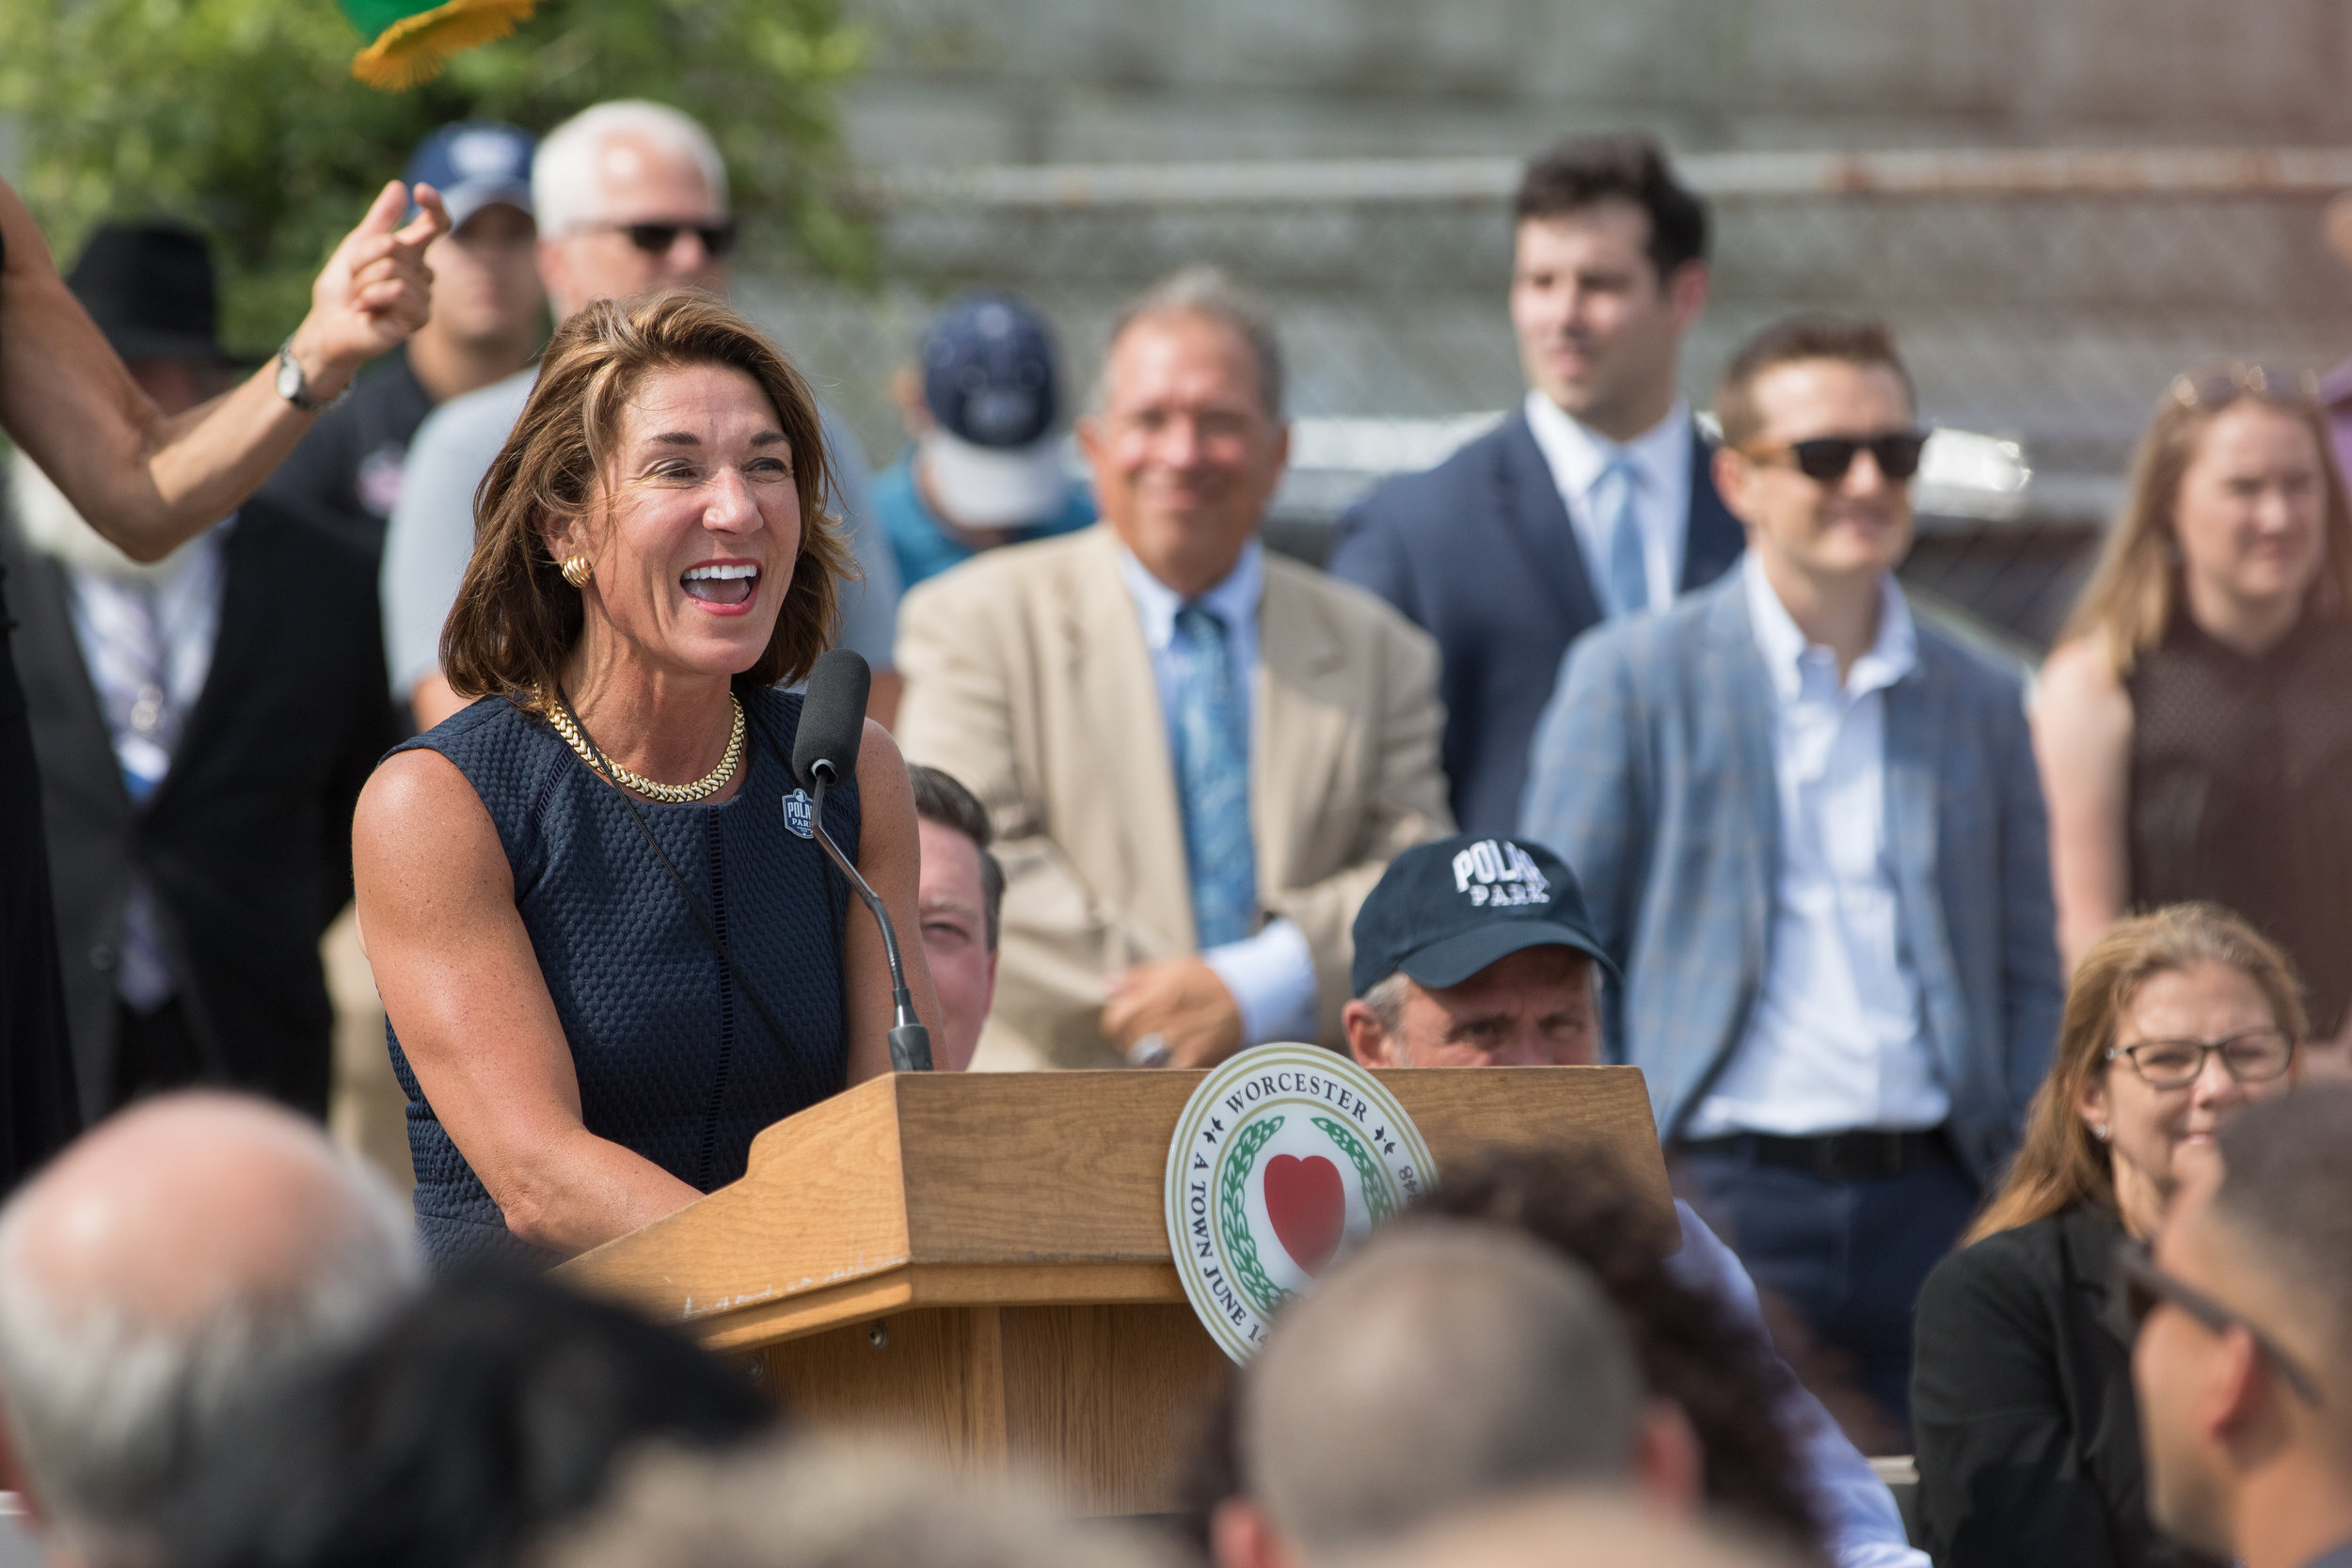 Lt. Governor Karyn Polito  speaks at the groundbreaking event for Polar Park, future home of the Worcester Red Sox. July 11, 2019, in Worcester, Massachusetts.